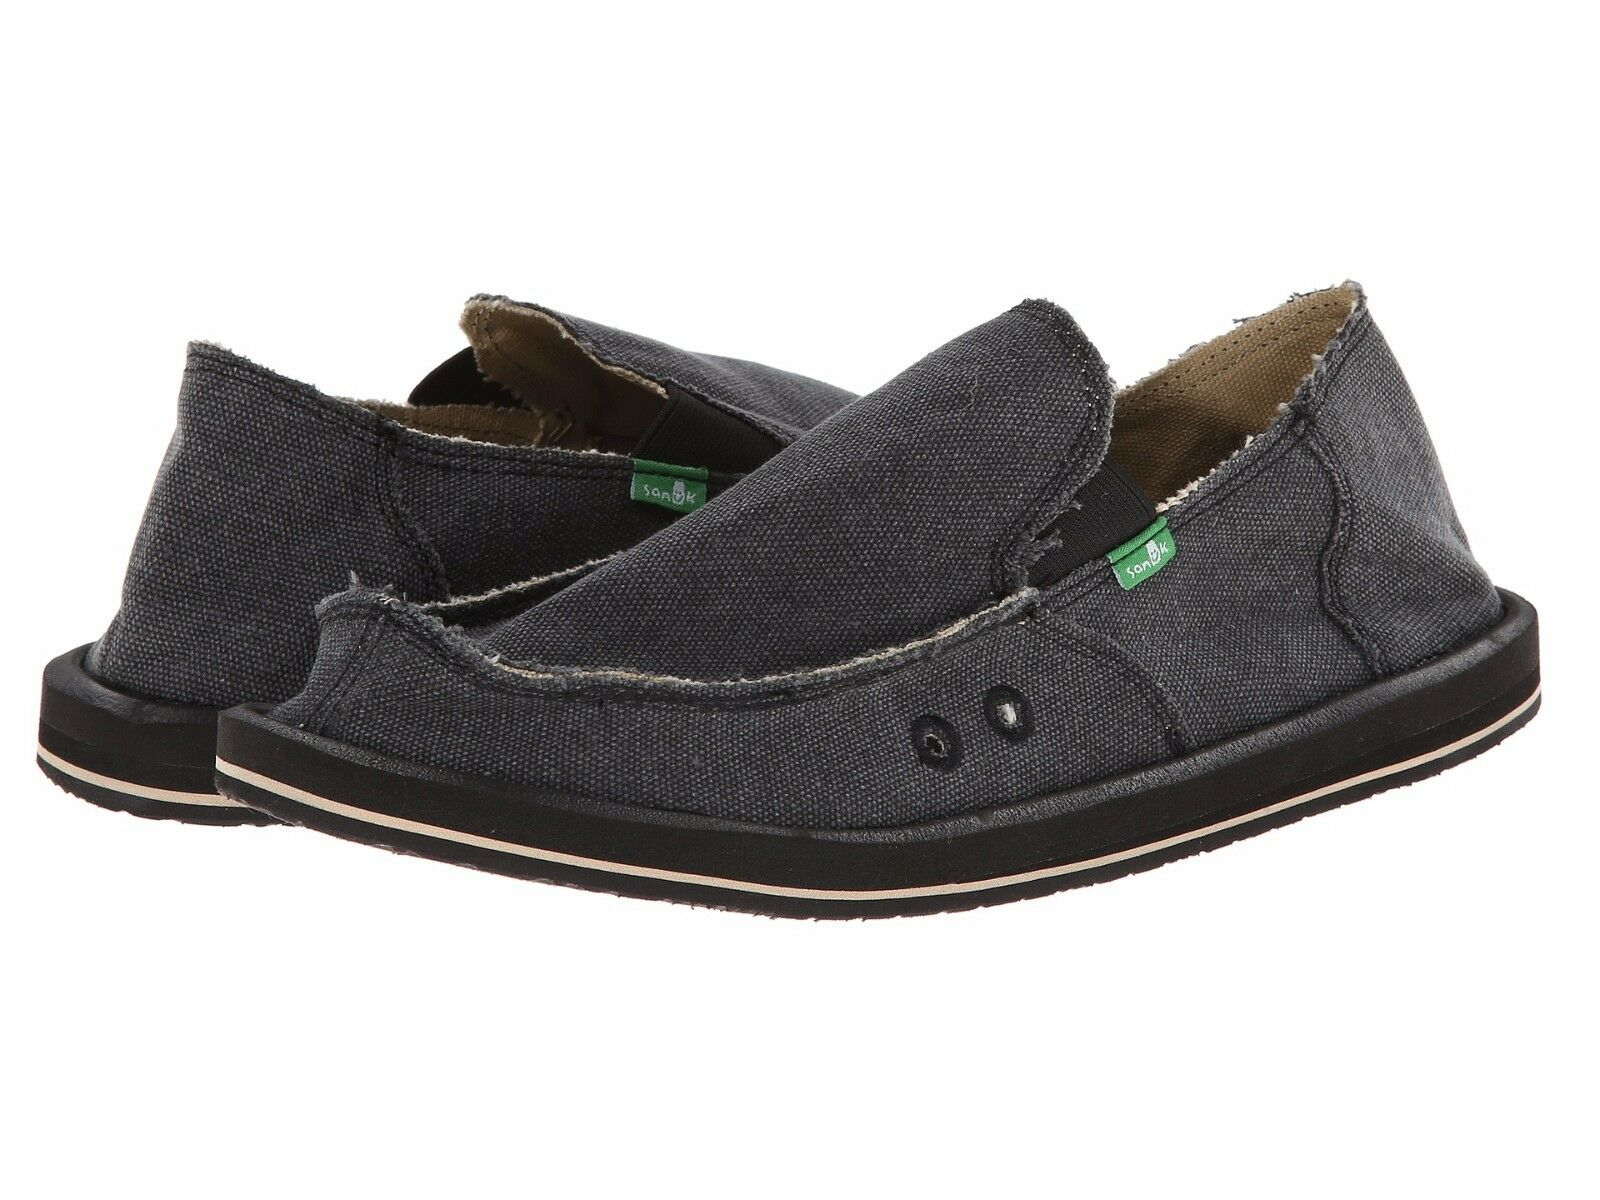 Men's Shoes Sanuk Vagabond Slip On Sidewalk Sidewalk On Surfers SMF1001 Charcoal *New* aa7da3